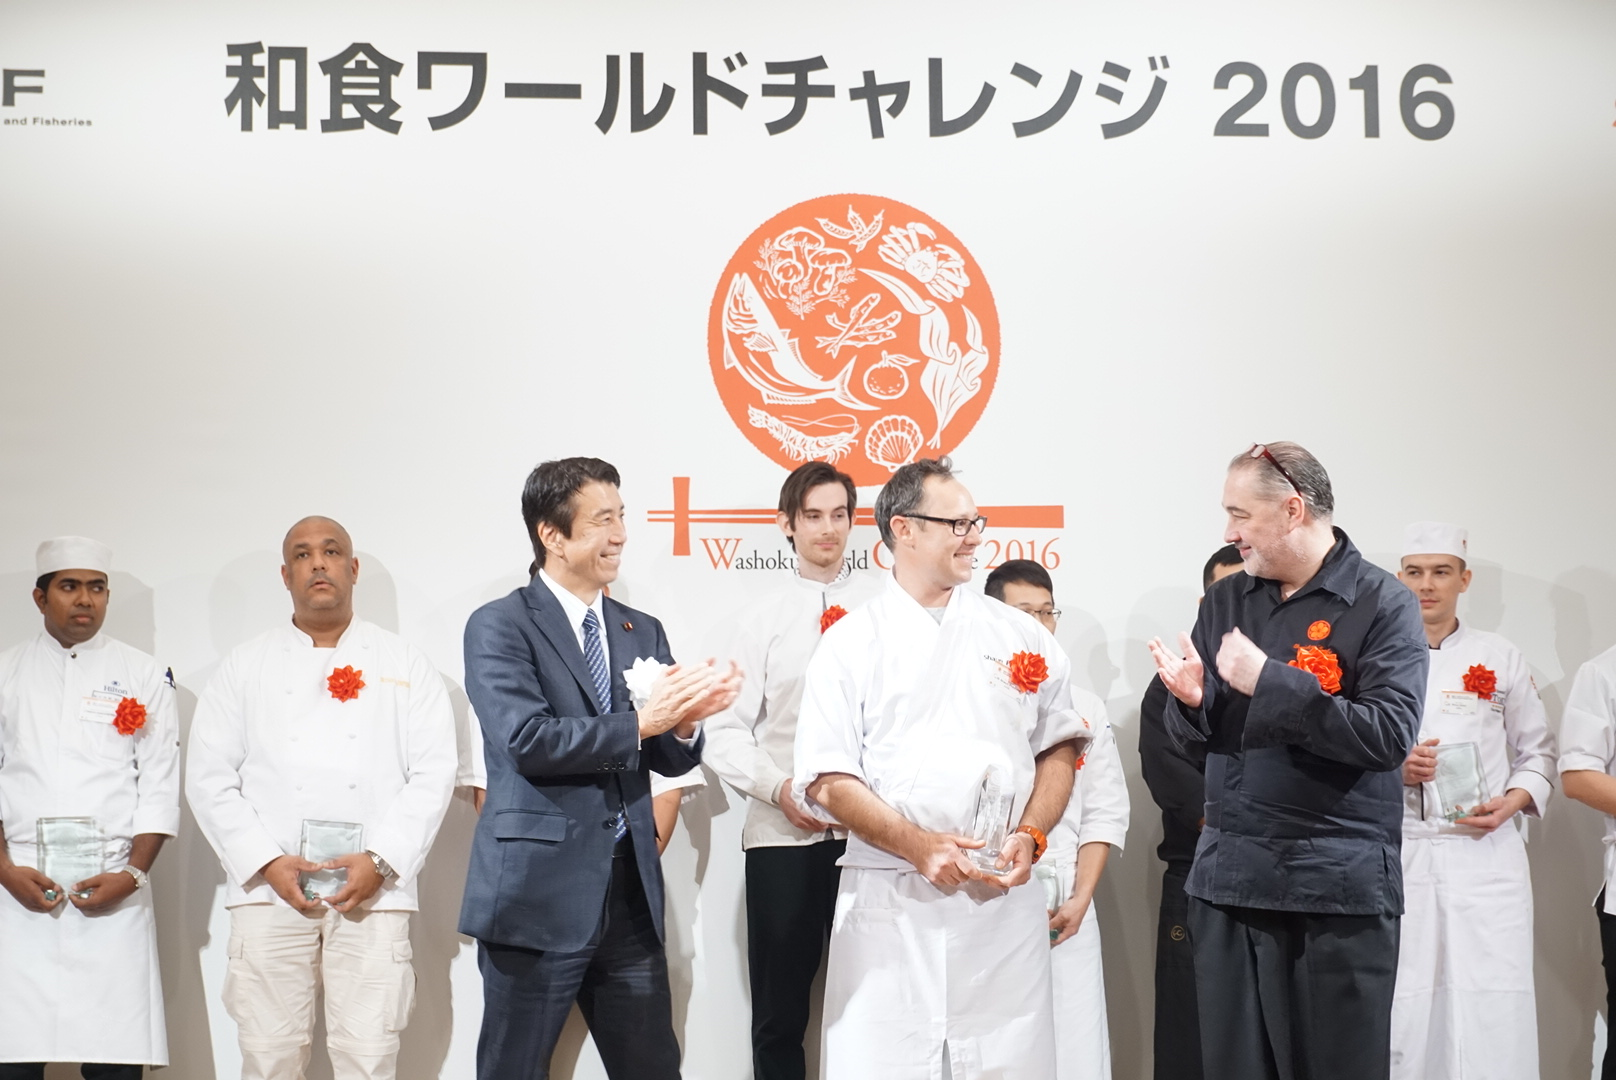 Sean Presland (centre) winning second place at the World Washoku Challenge 2016